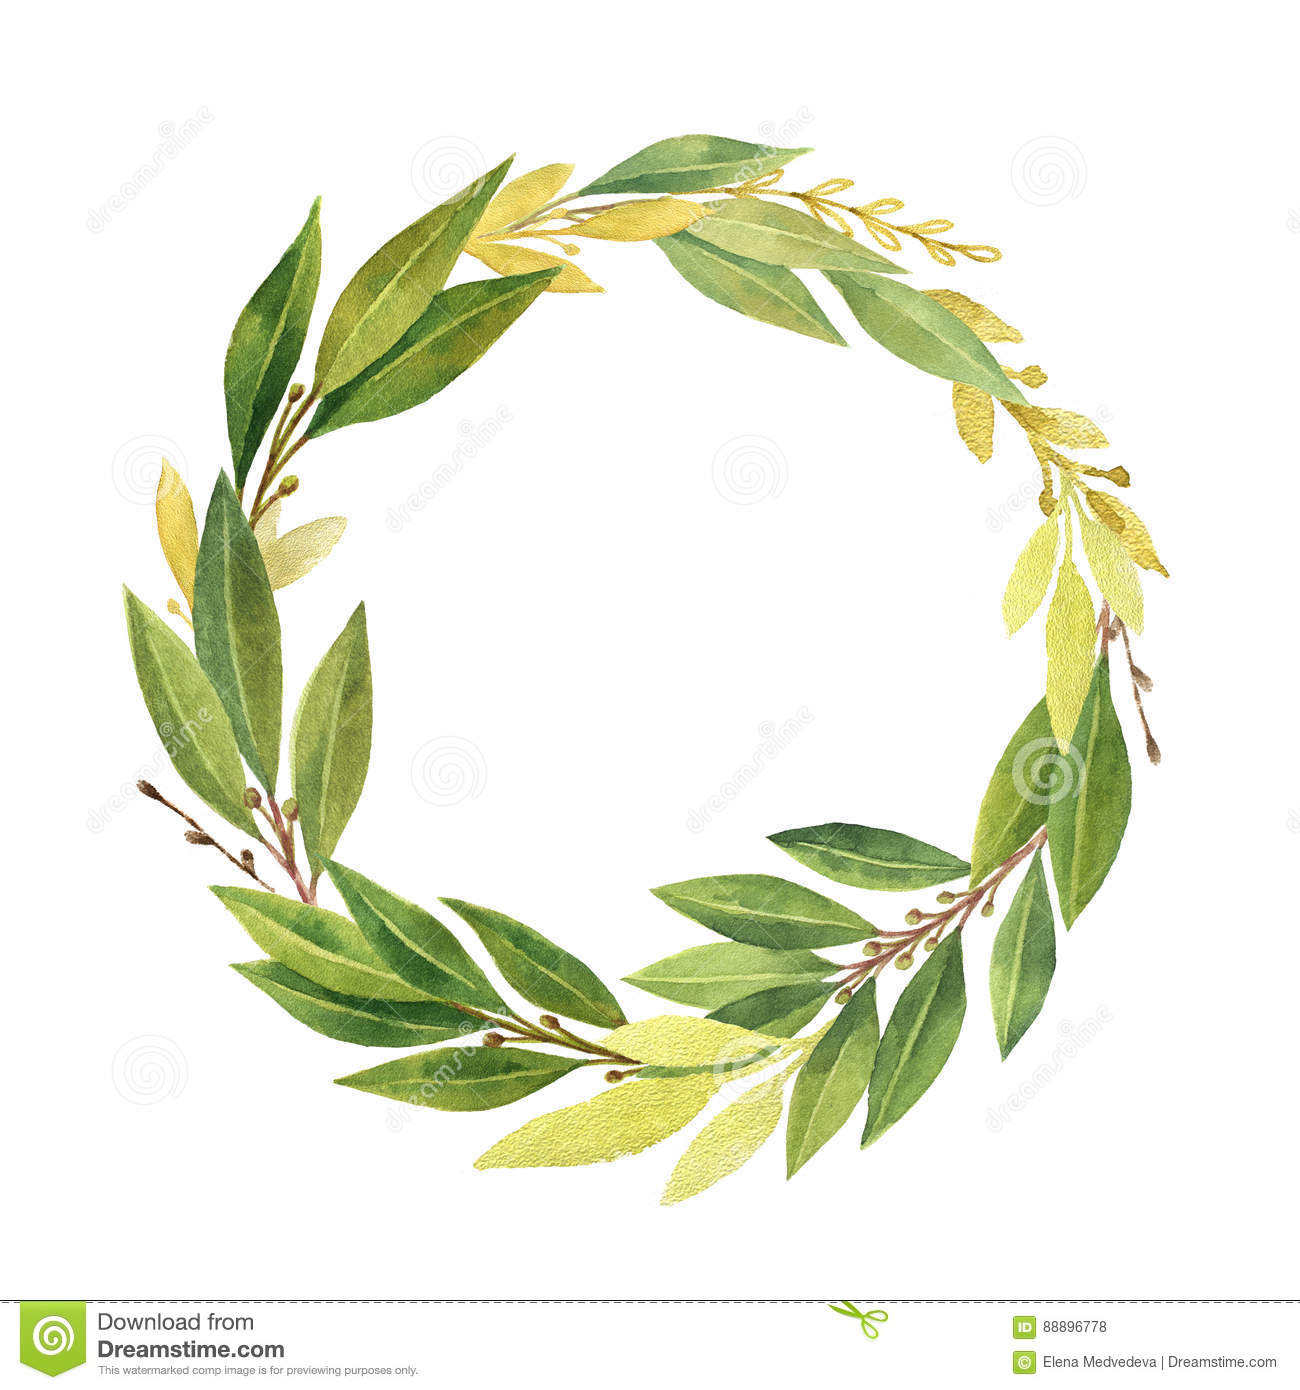 Watercolor Bay Leaf Wreath Isolated On White Background Stock Illustration Illustration Of Bright Drawing 88896778